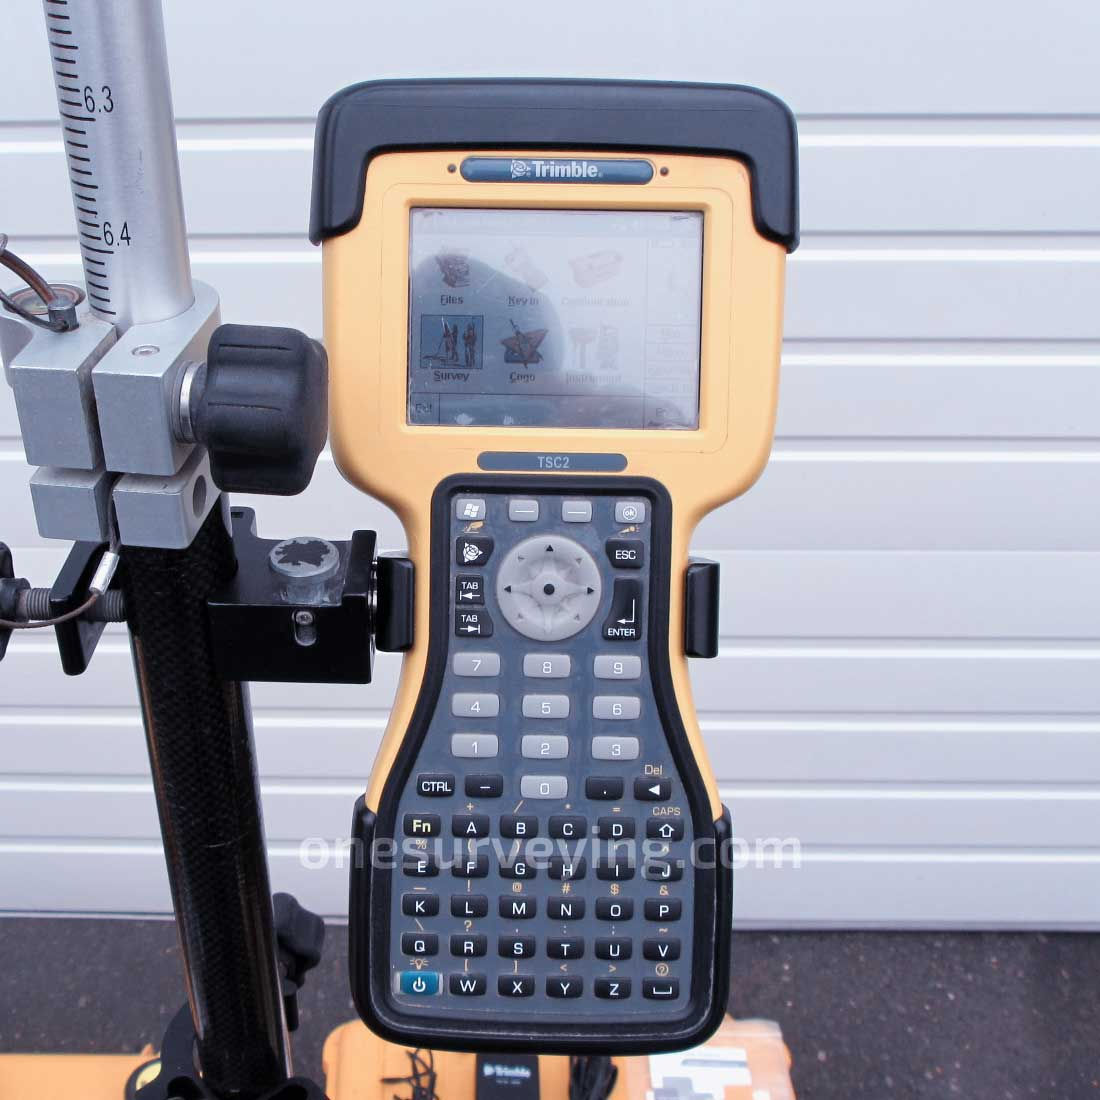 Trimble-R8-Model-3-Base-Rover-TSC2.jpg